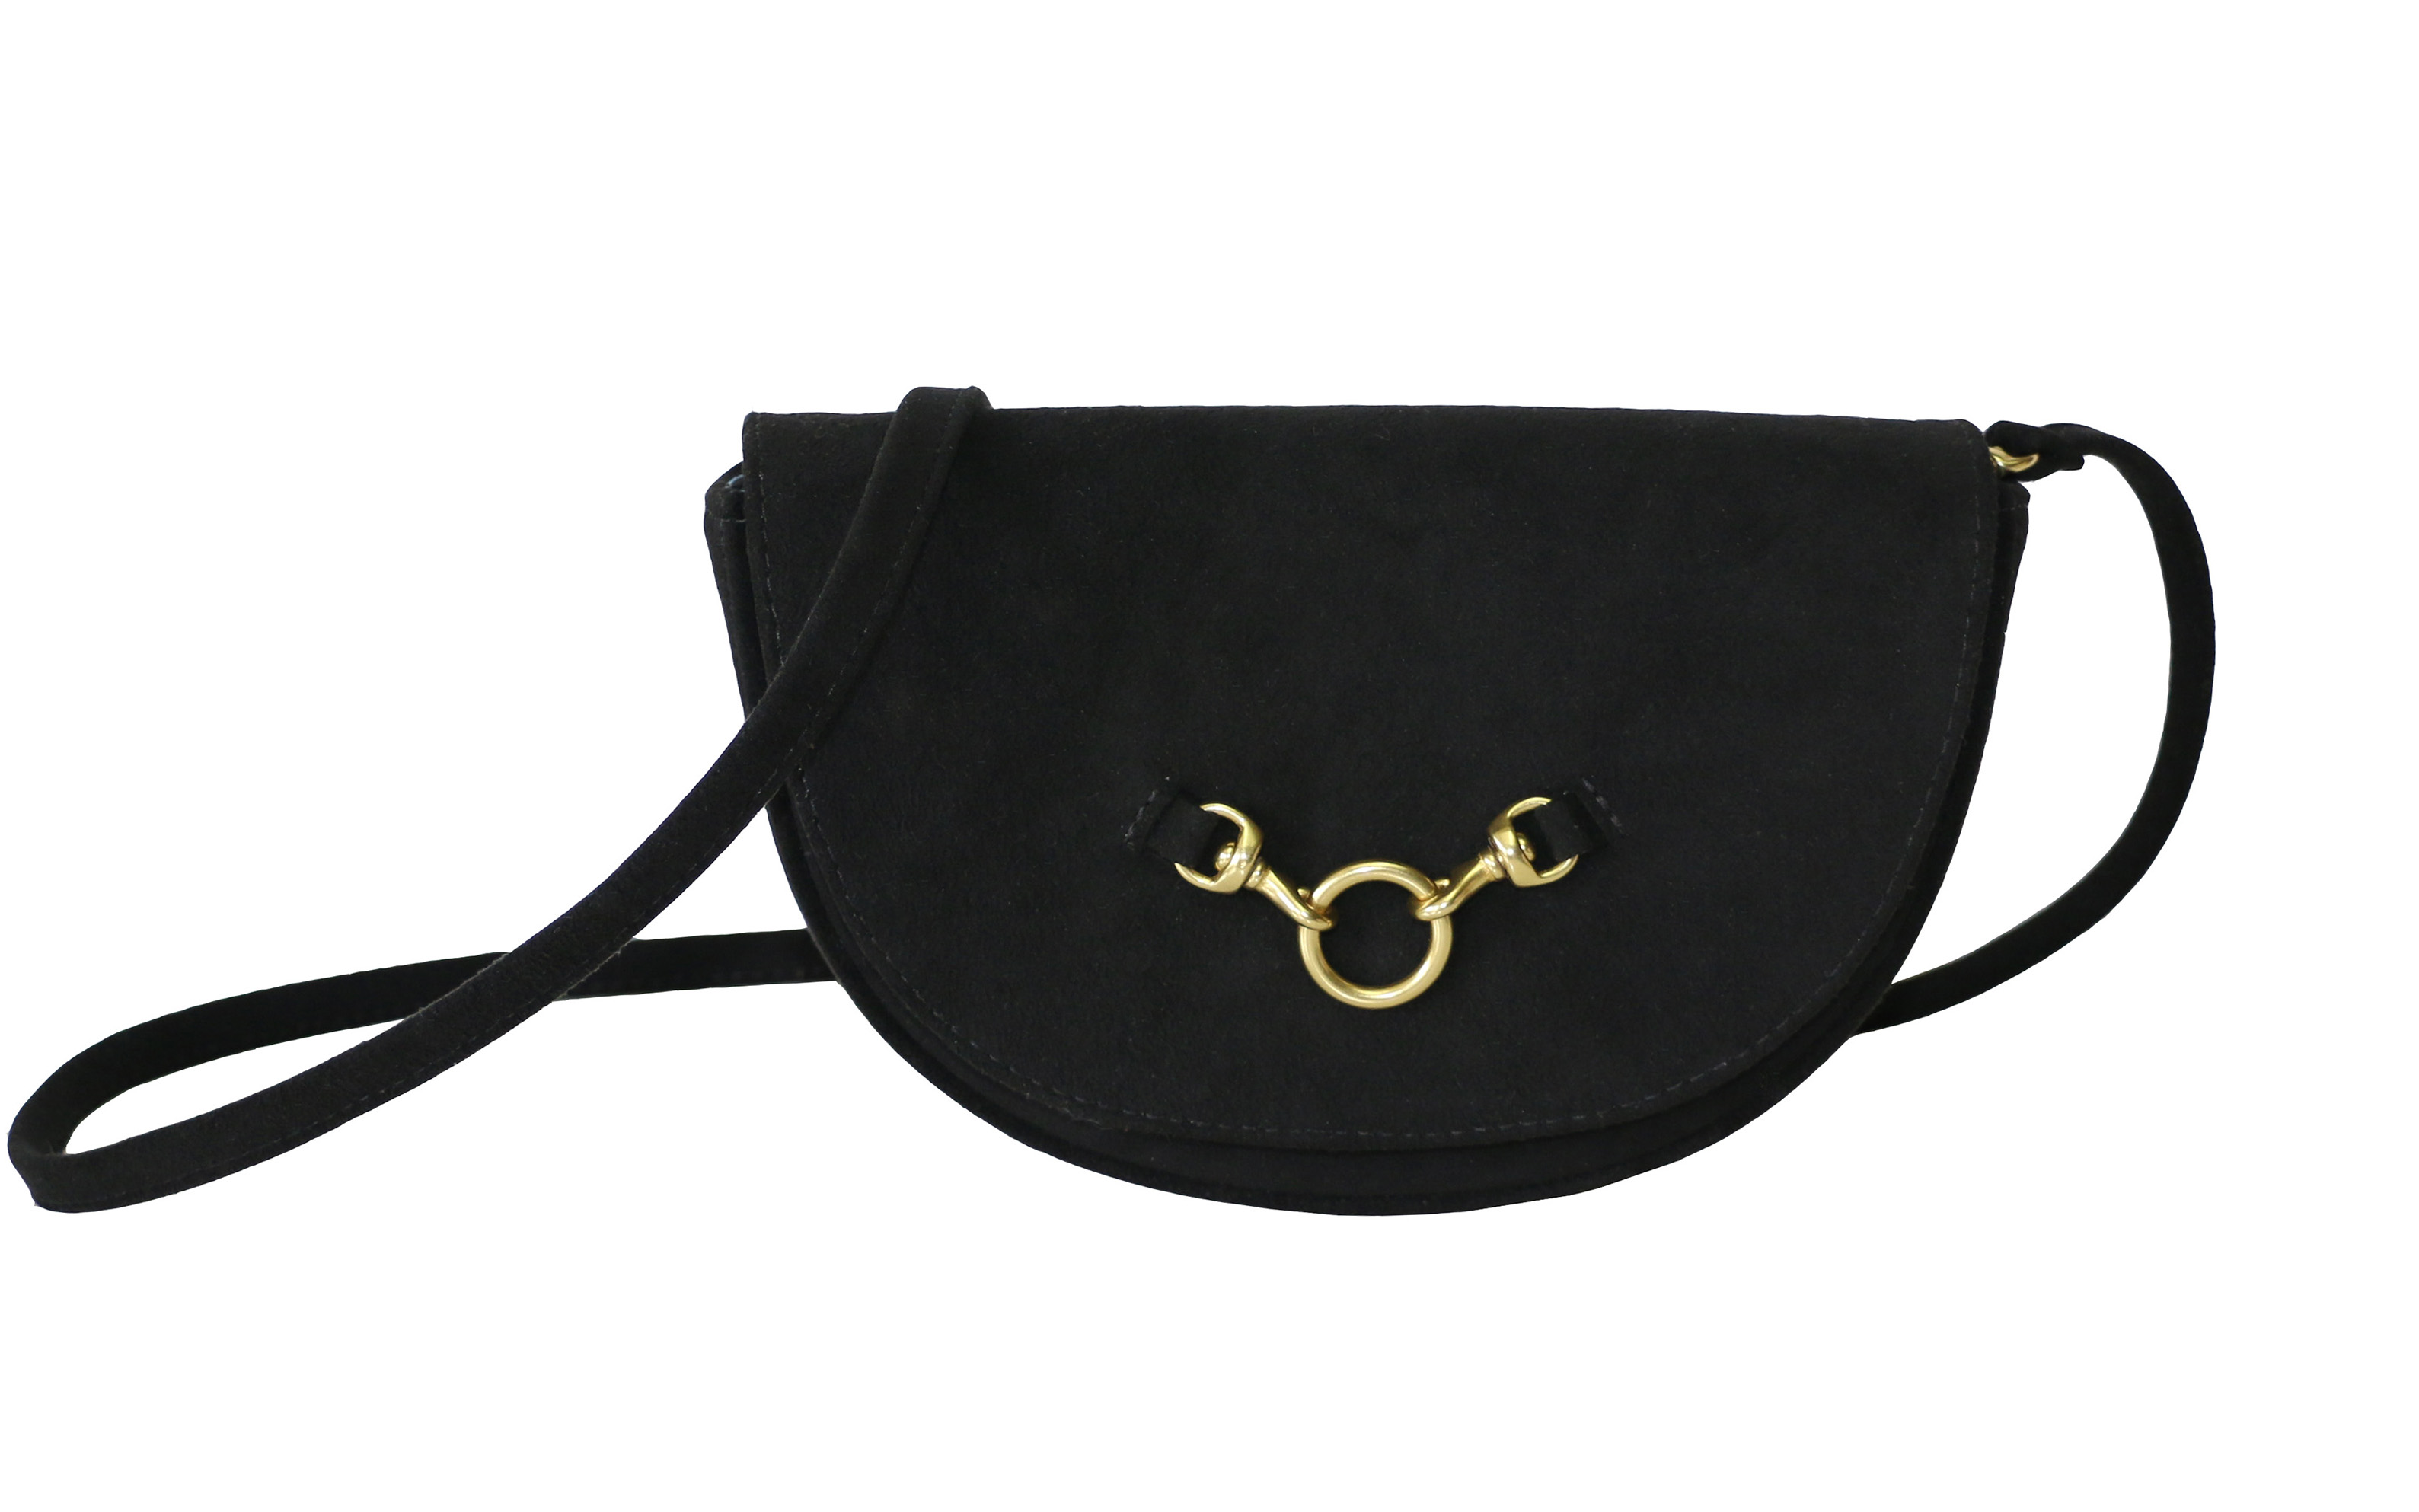 Half Moon Convertible Crossbody in Black